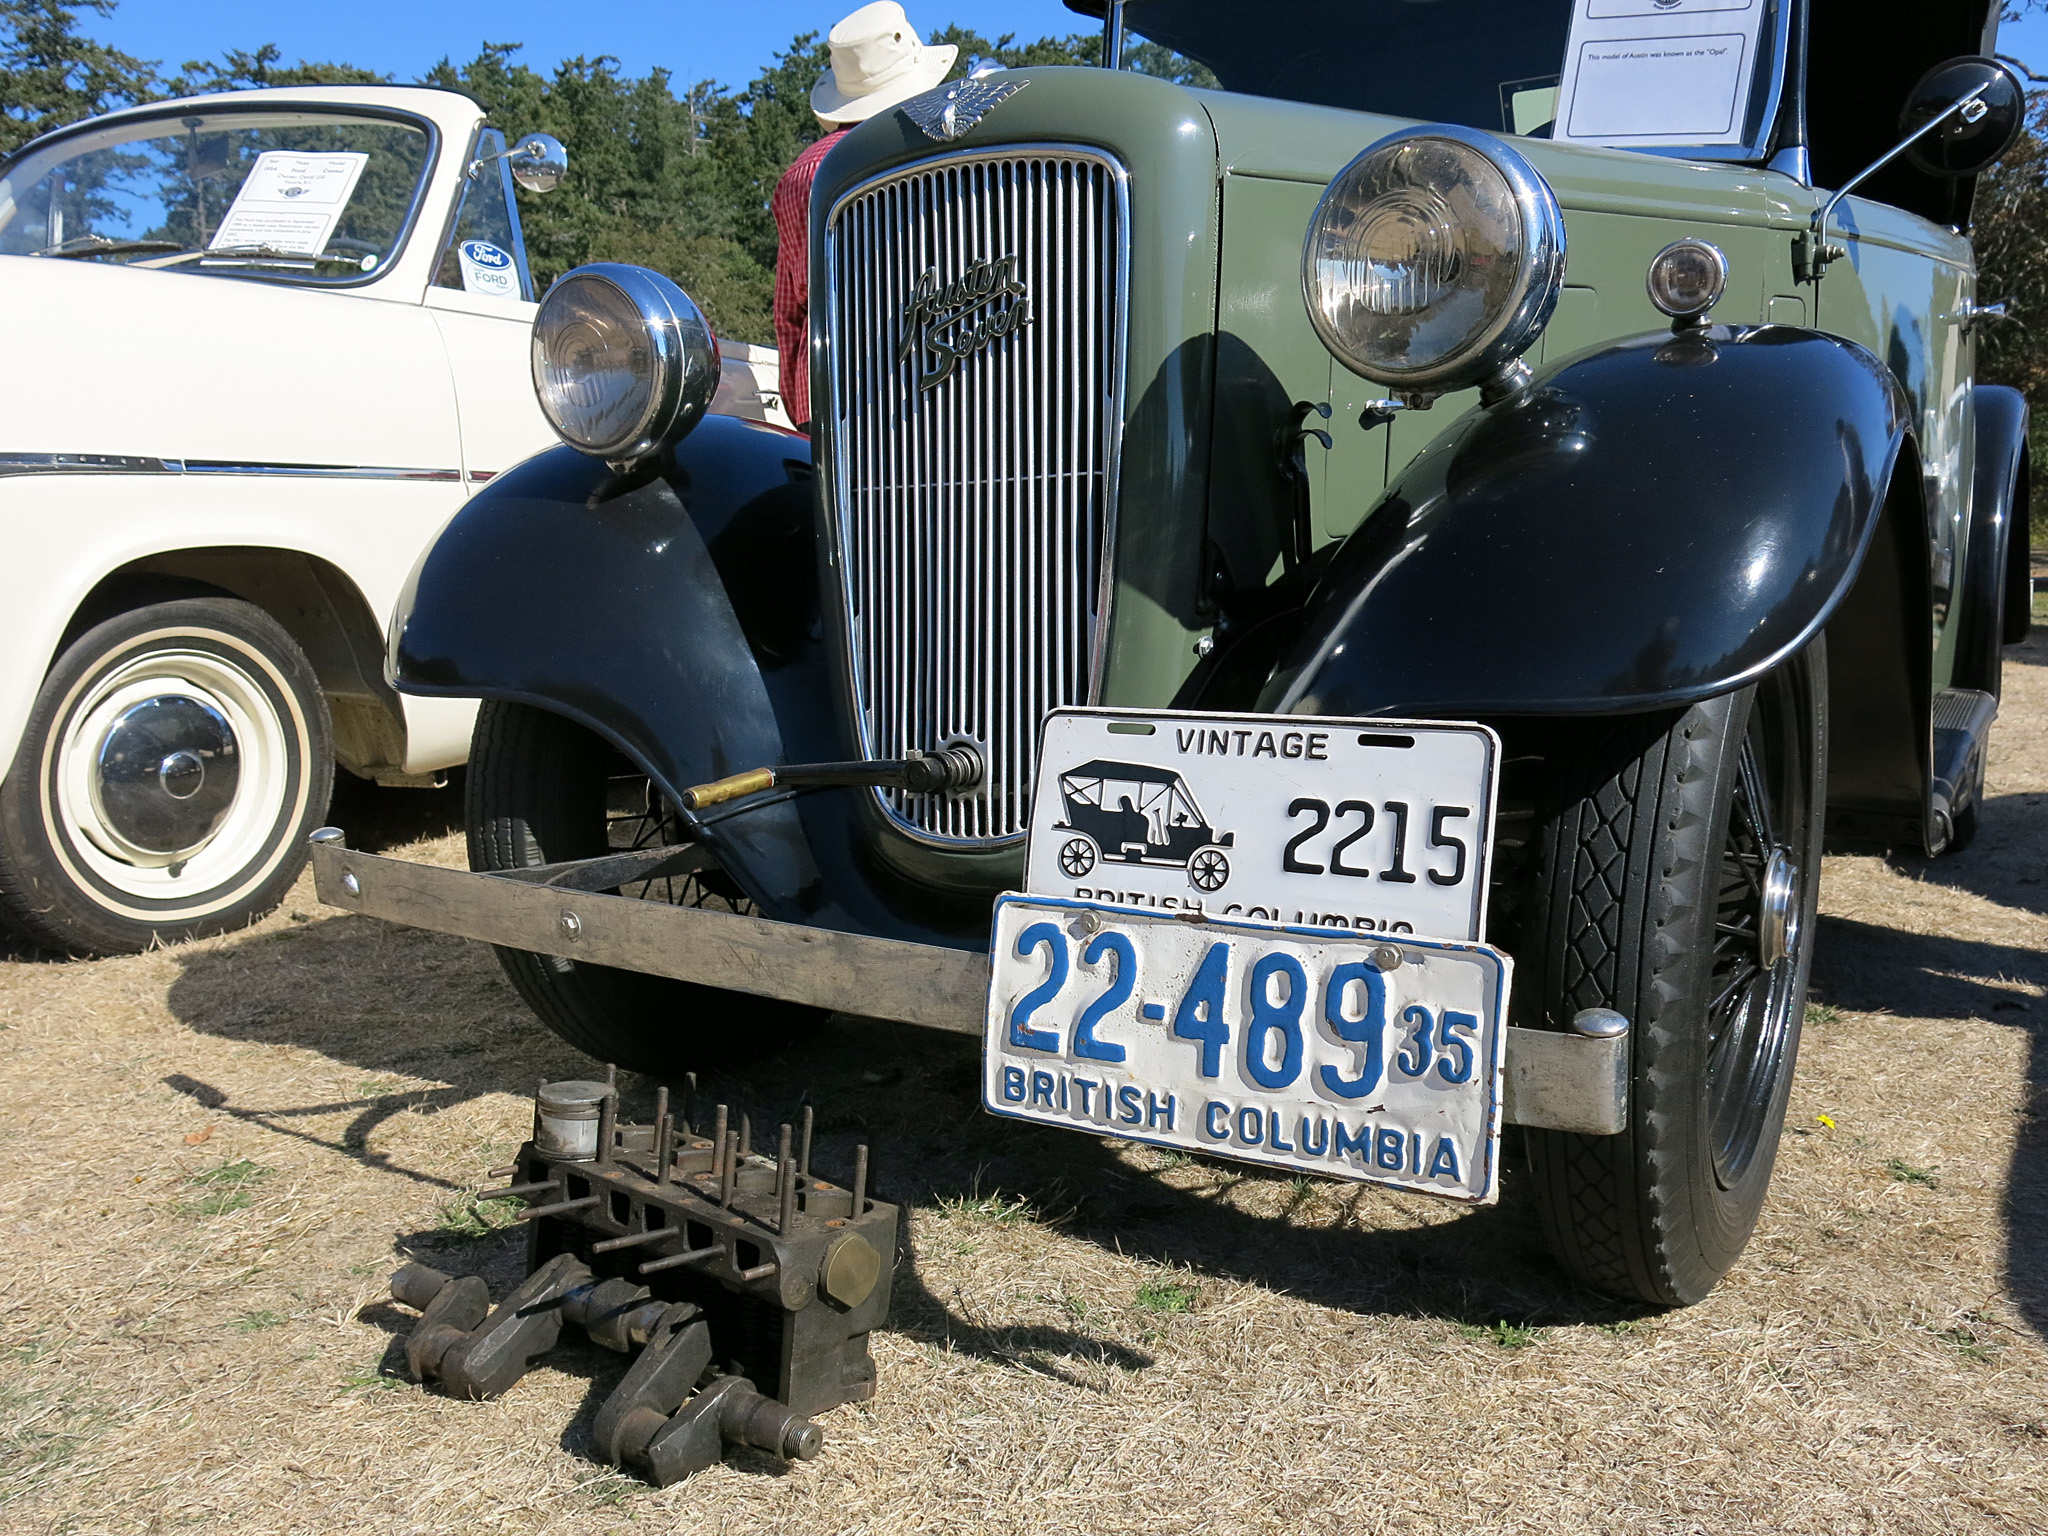 David Gill's 1935 Austin 7 Opal does just fine with 747 ccs